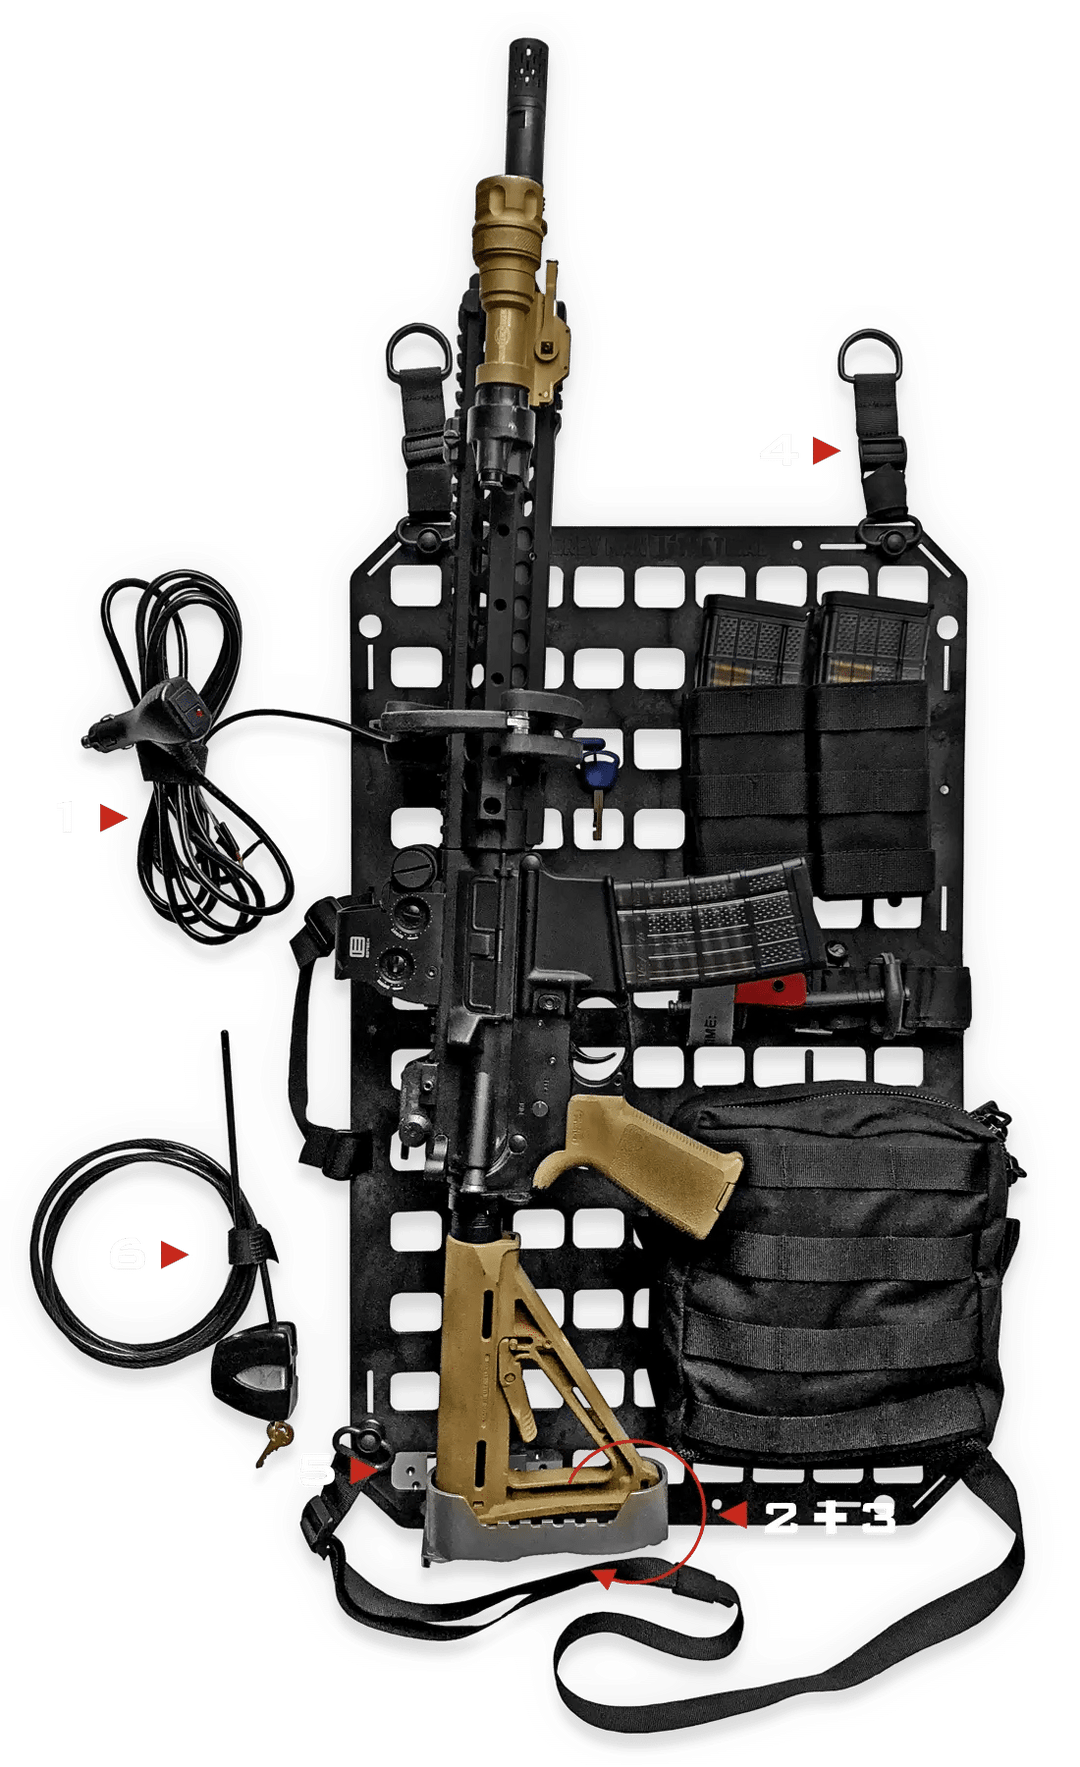 rifle mounted onto molle panel with locking keeping it secure to the car and rifle locked, with molle pouches and medical supplies